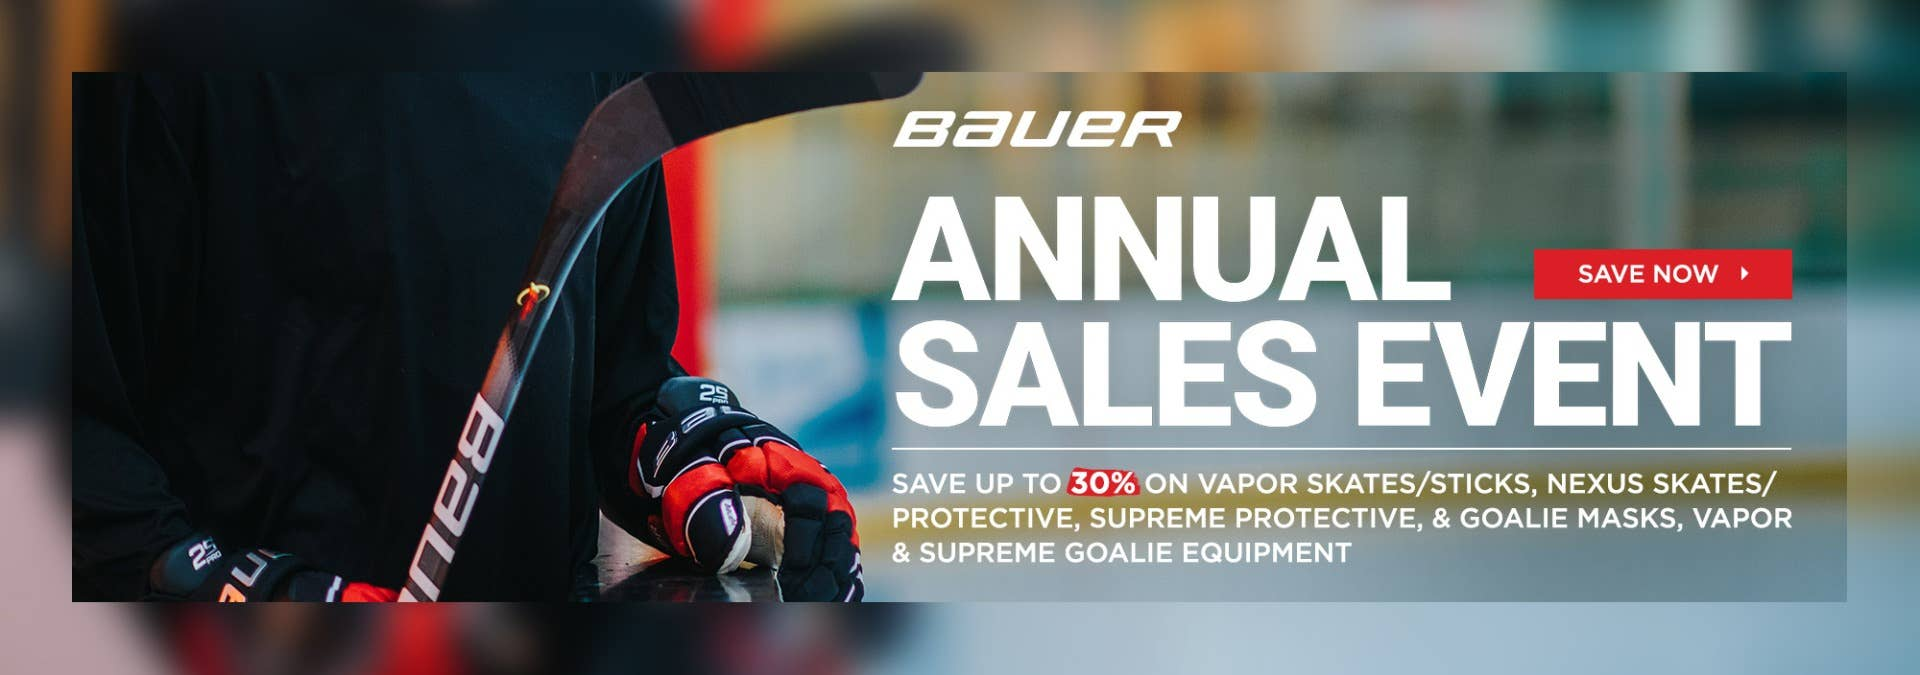 Bauer Annual Sales Event: Save up to 30%